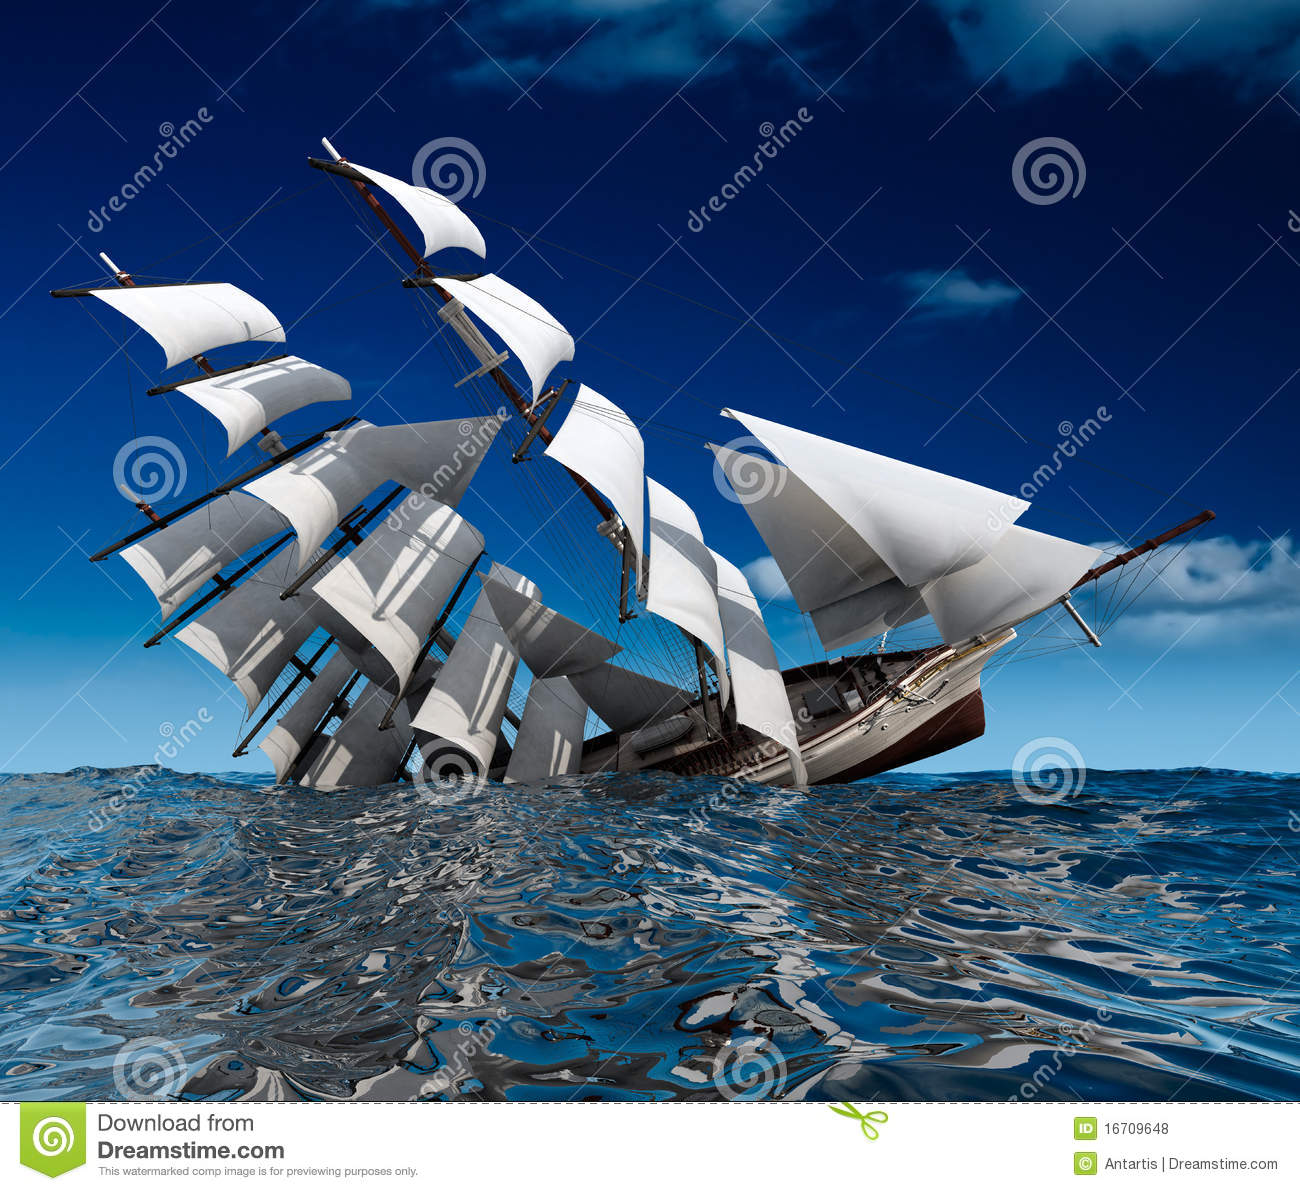 Sailing Ship Sinking Royalty Free Stock Photos Image